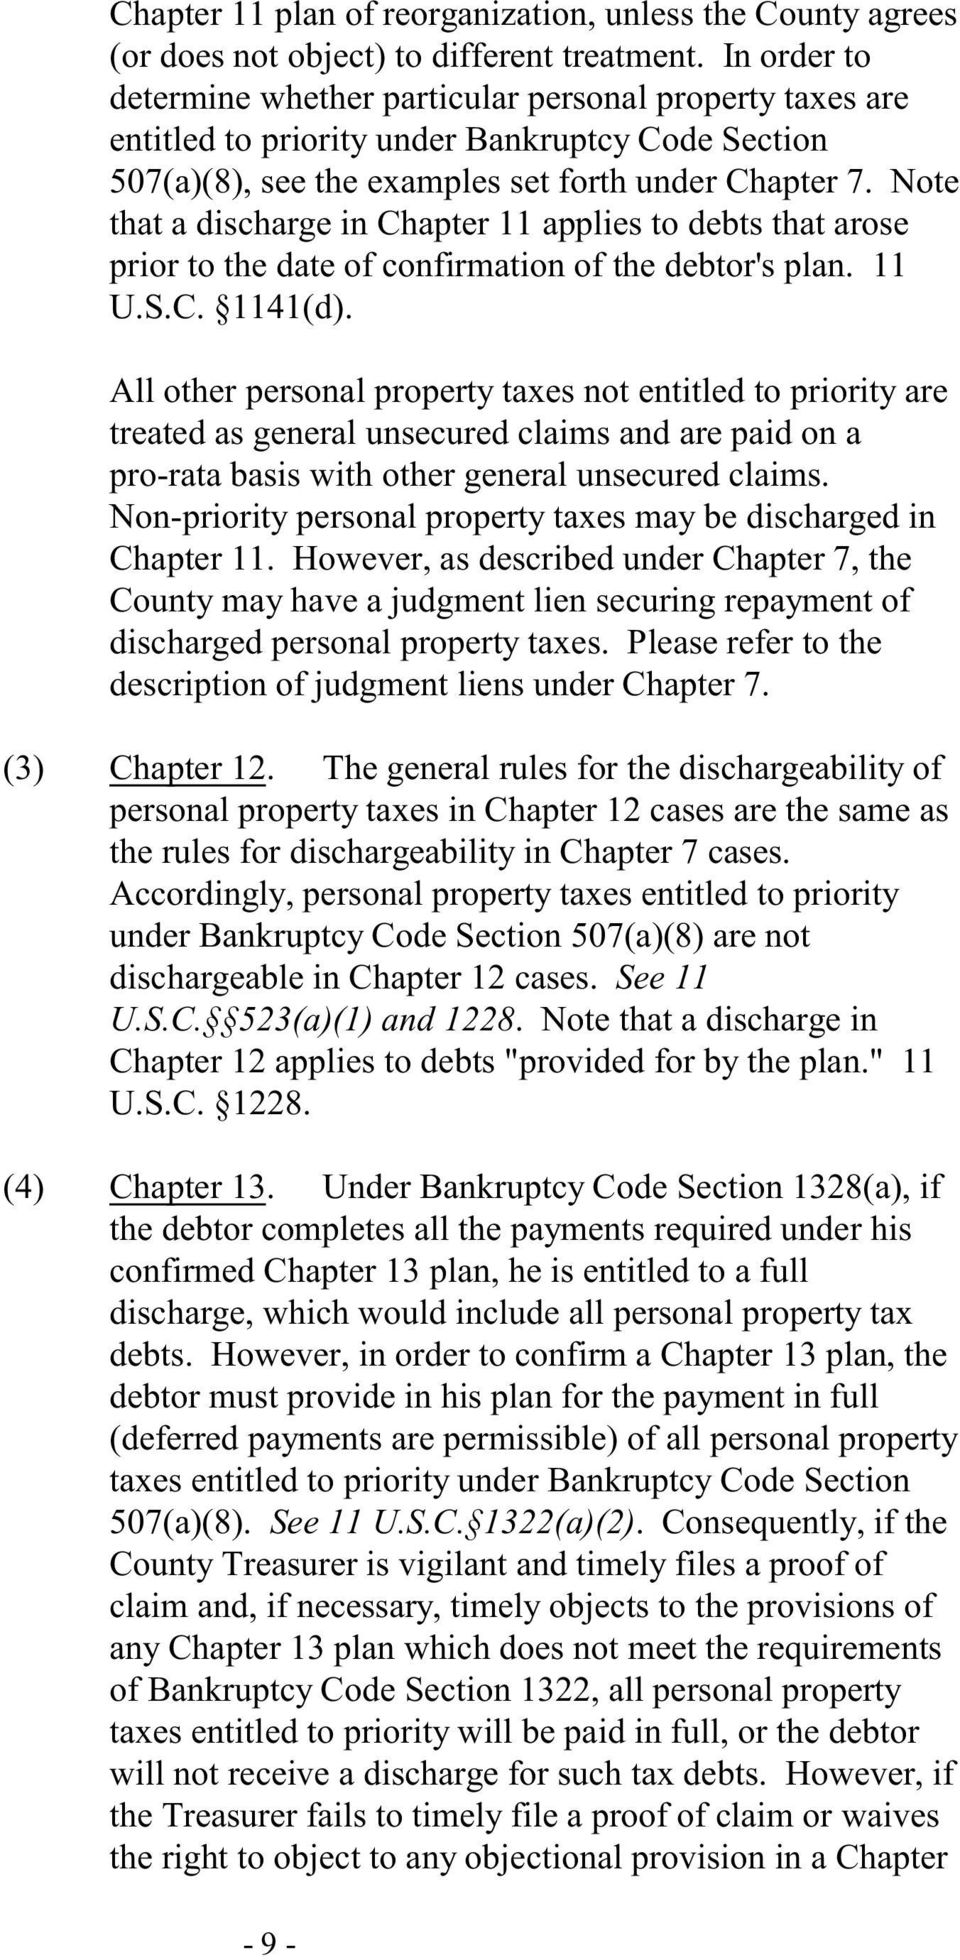 Note that a discharge in Chapter 11 applies to debts that arose prior to the date of confirmation of the debtor's plan. 11 U.S.C. 1141(d).